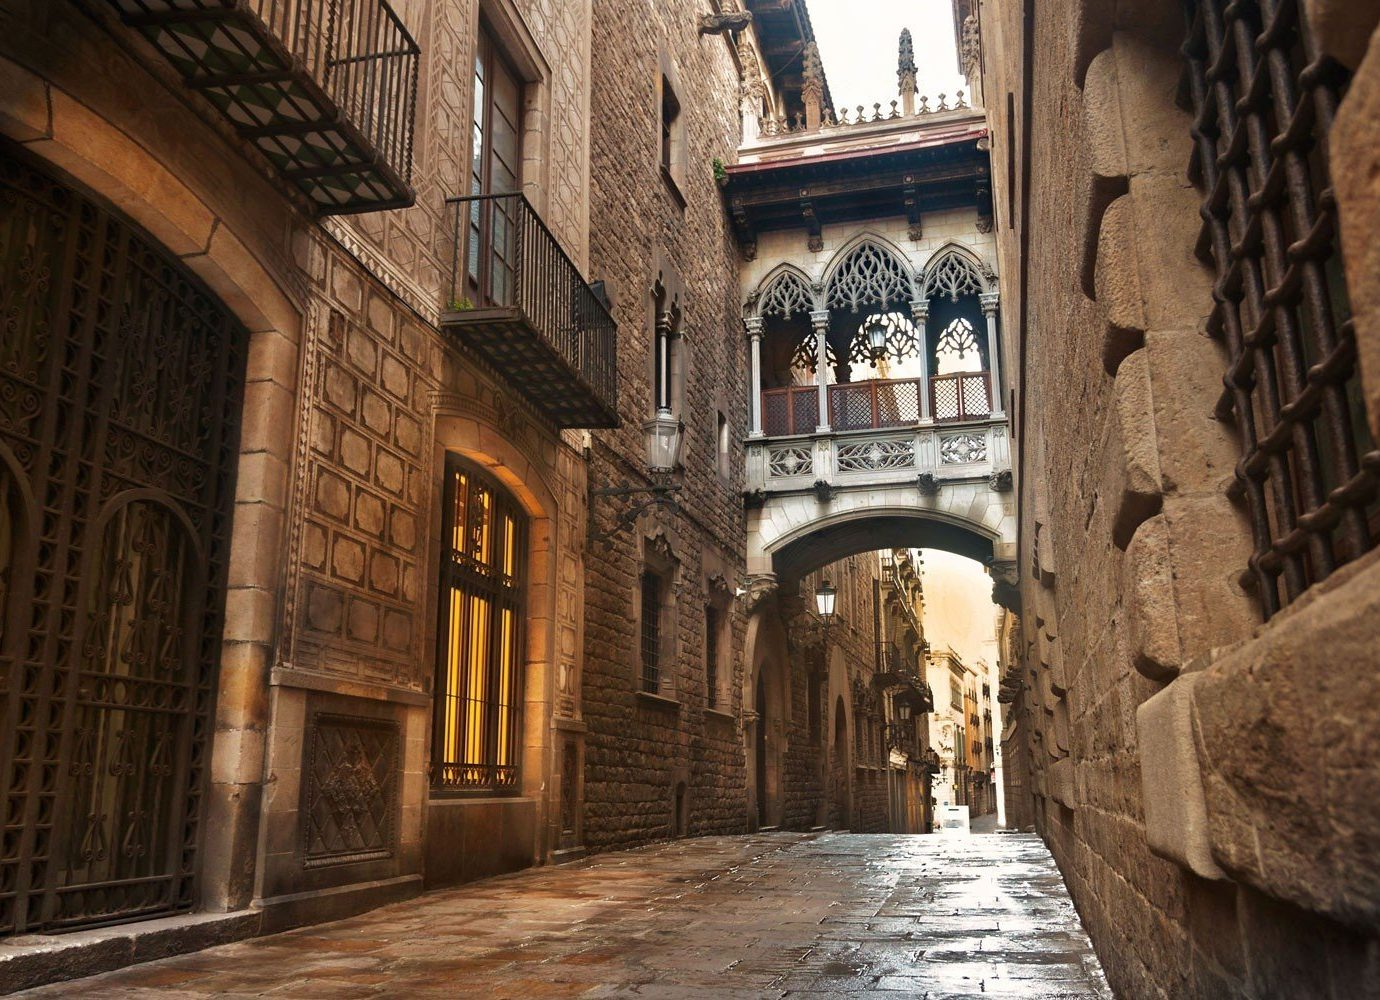 Trip Ideas building outdoor stone road alley Town street urban area human settlement Architecture brick ancient history tourism middle ages infrastructure facade cathedral arcade history old way walkway